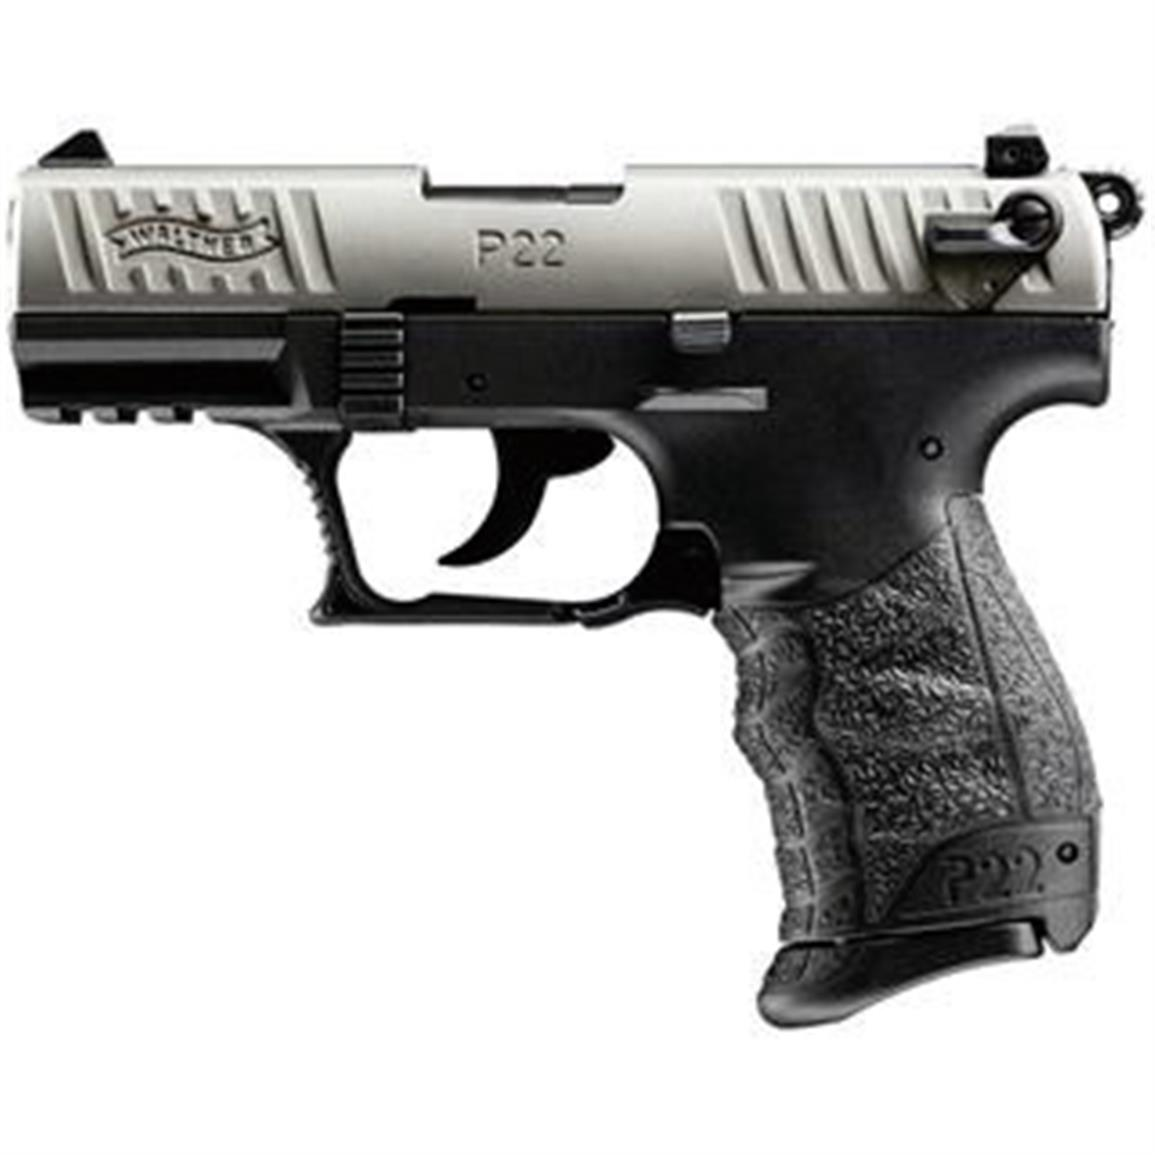 Walther P22 CA Compliant, Semi-automatic, .22LR, 10 Round Capacity